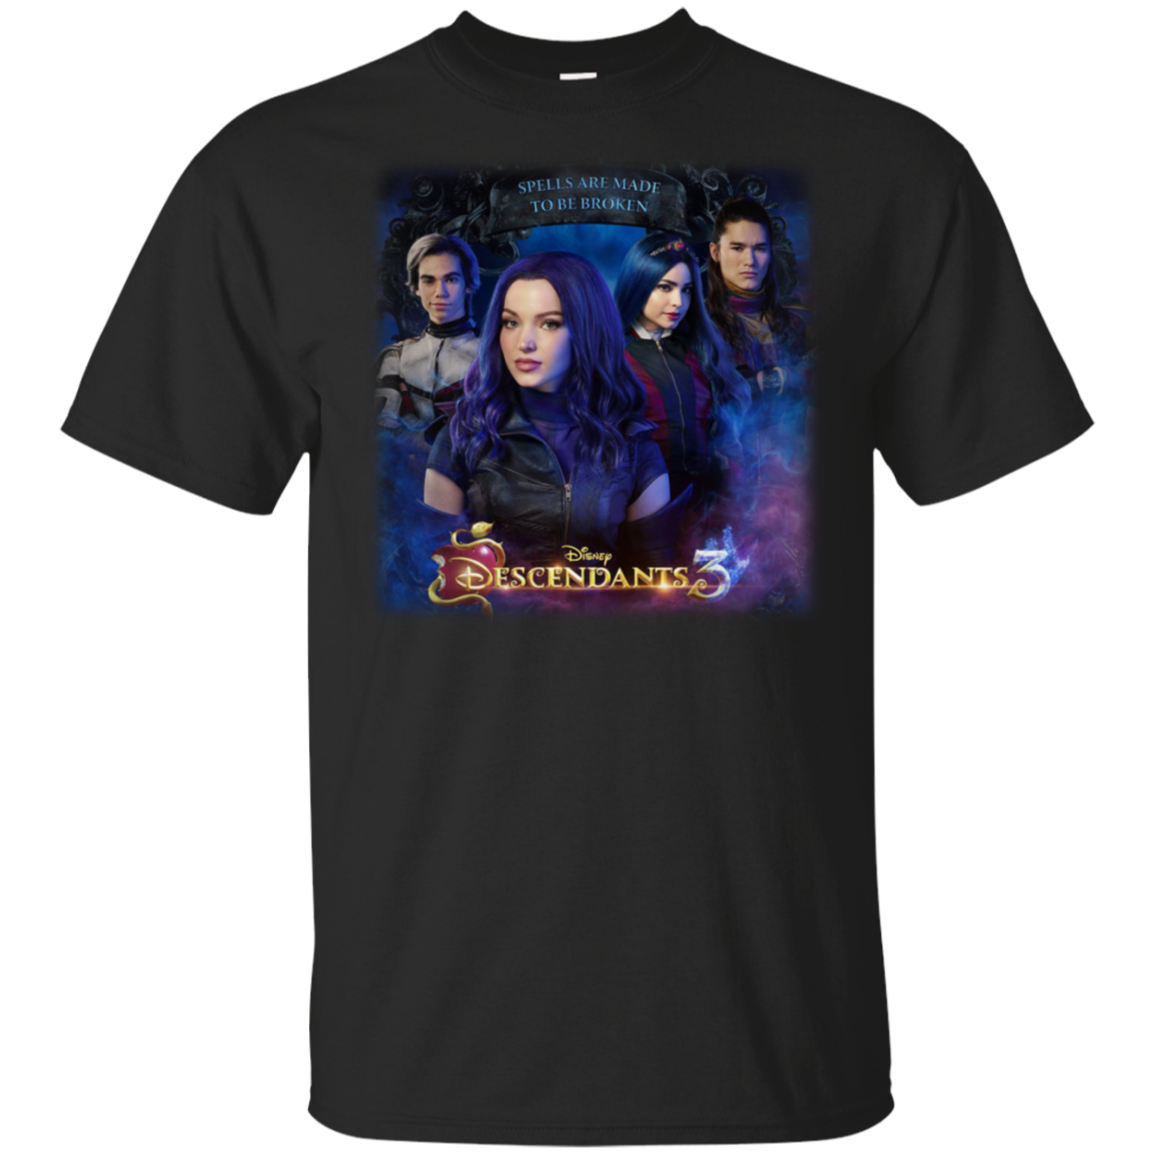 <font><b>D</b></font>!Sney Descendants 3 Cameron Boyce <font><b>2019</b></font> New T-Shirt Navy-Black For Men- Adult Summer Streewear Size:S-3Xl image